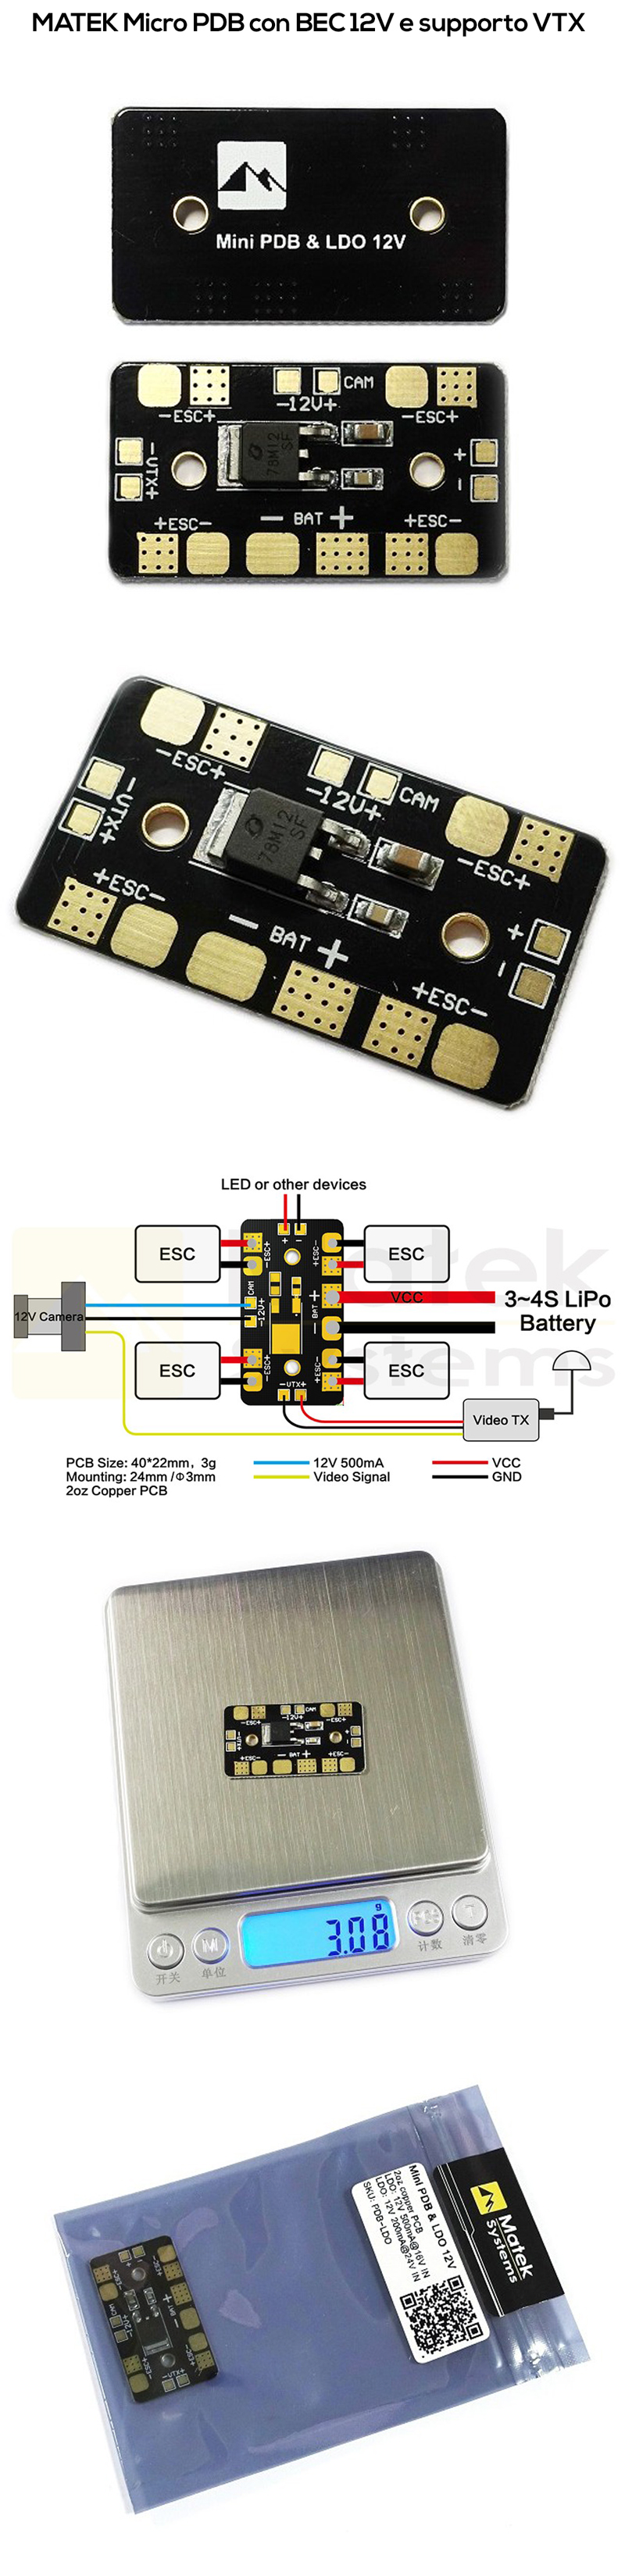 matek-micro-power-distribution-board-micro-pdb--vtx-camera-led-and-power-hub-costruzione-droni-fpv